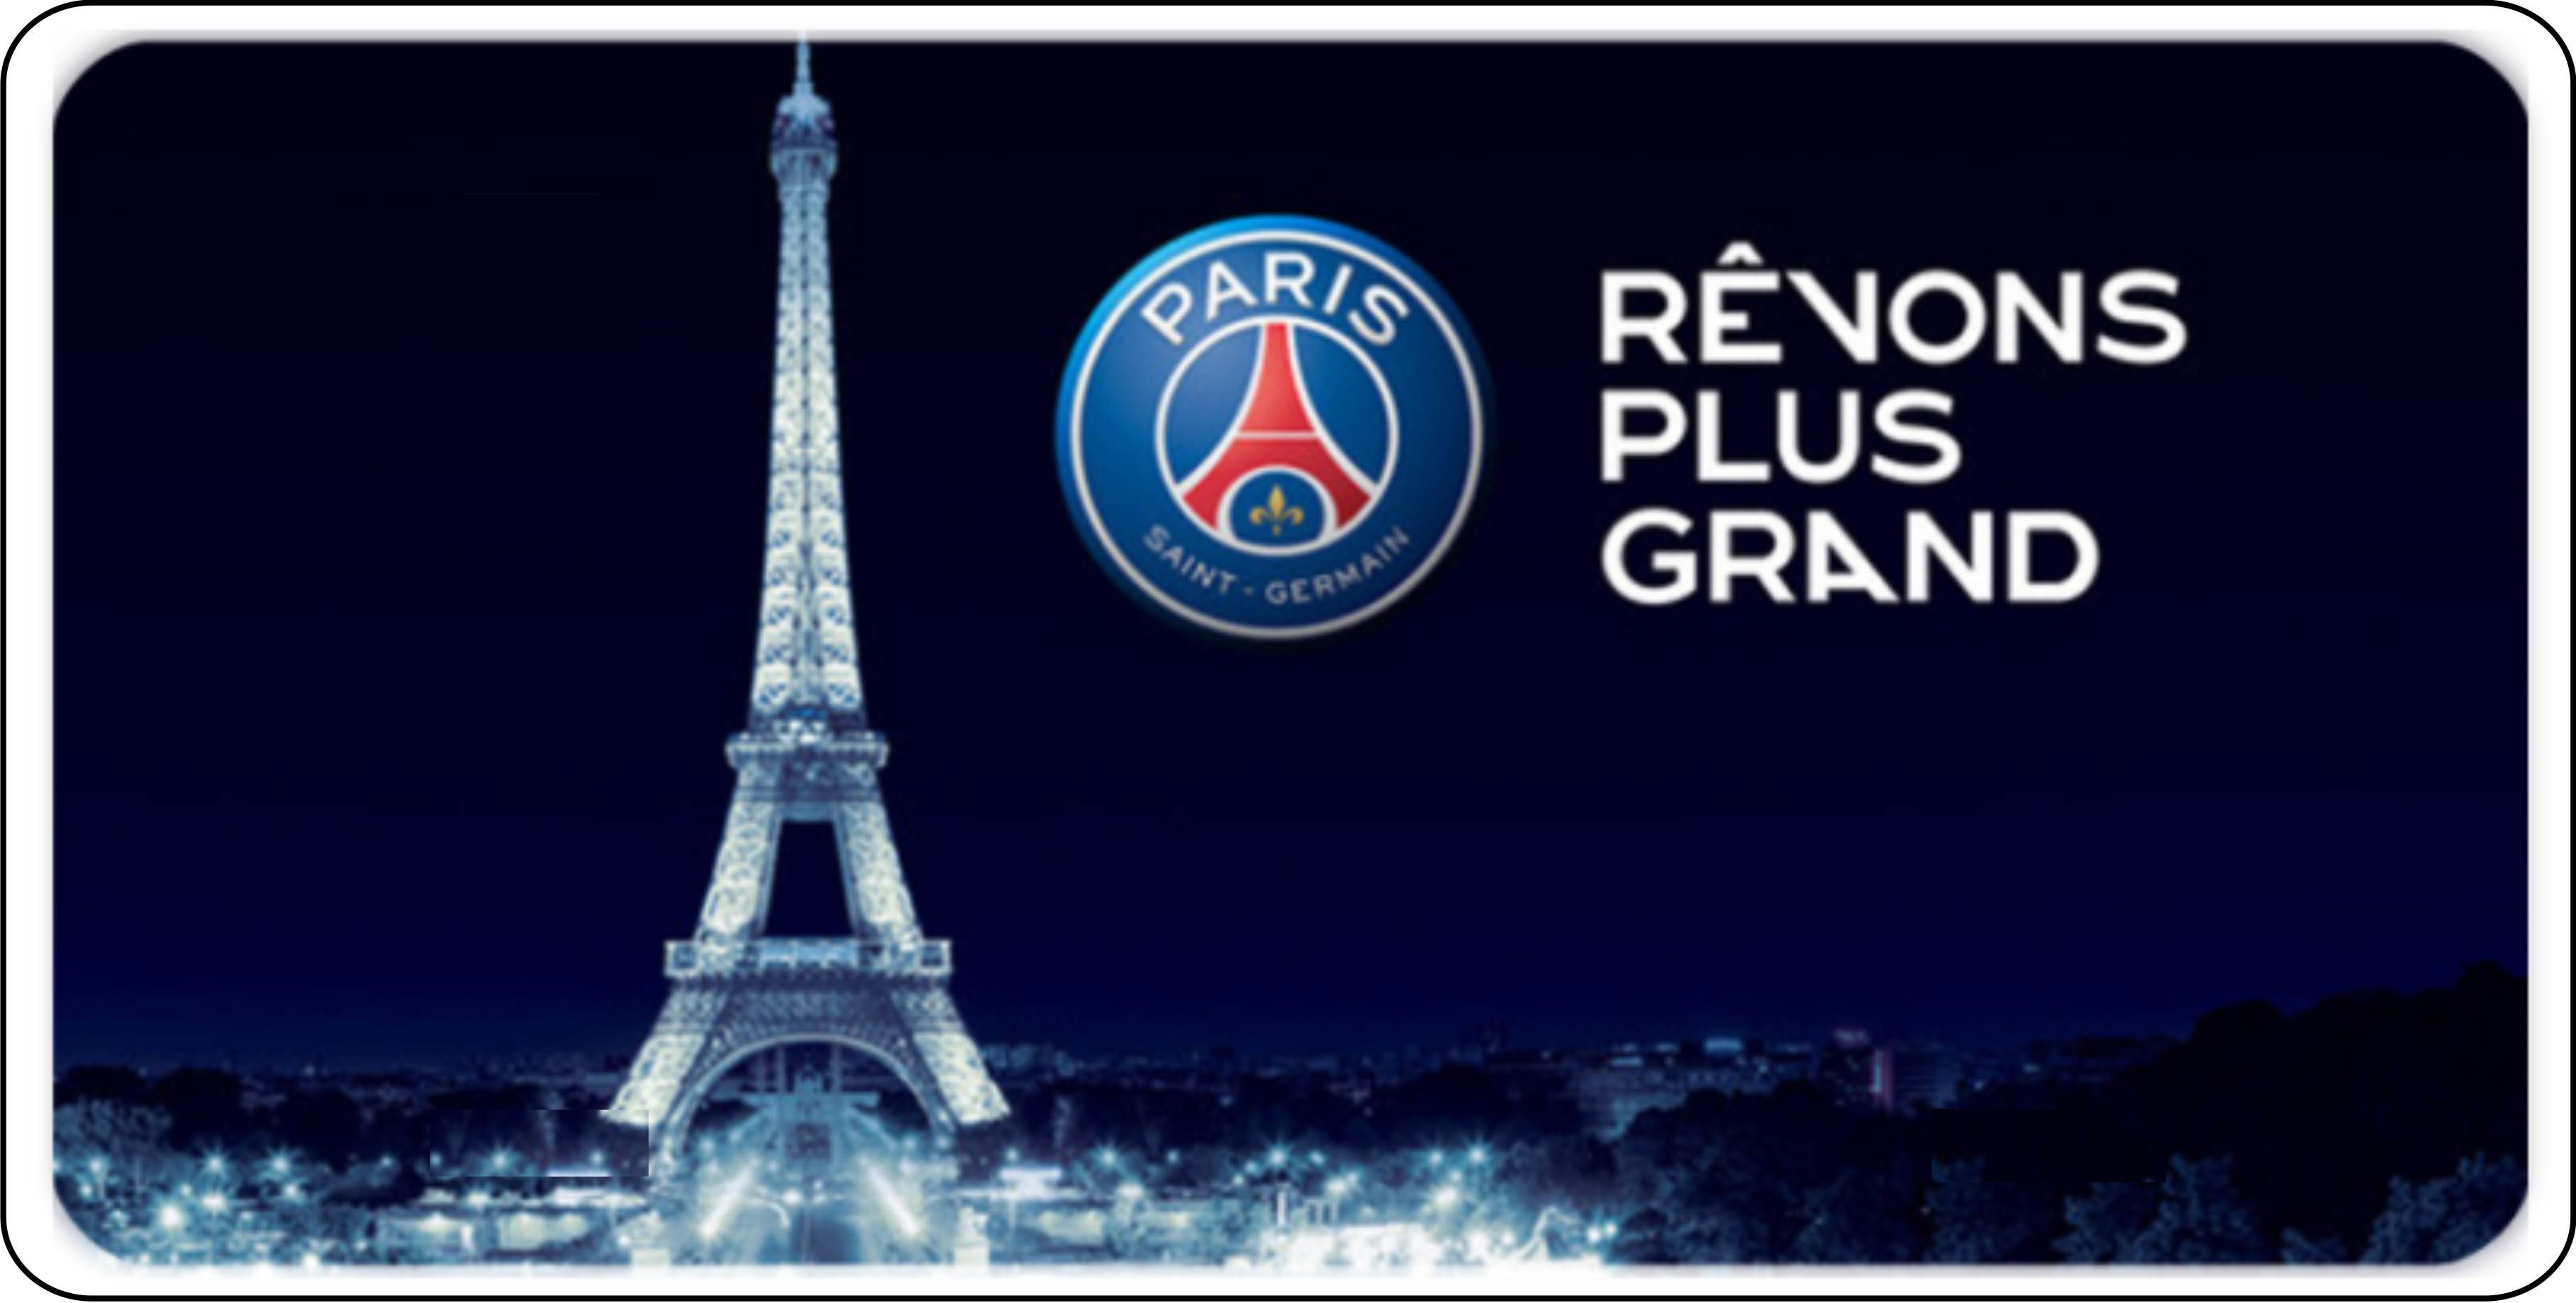 Paris Saint Germain Eiffel Tower Soccer Photo License Plate Paris Saint Germain Eiffel Tower Soccer Photo License Plate Lpo2482 11 99